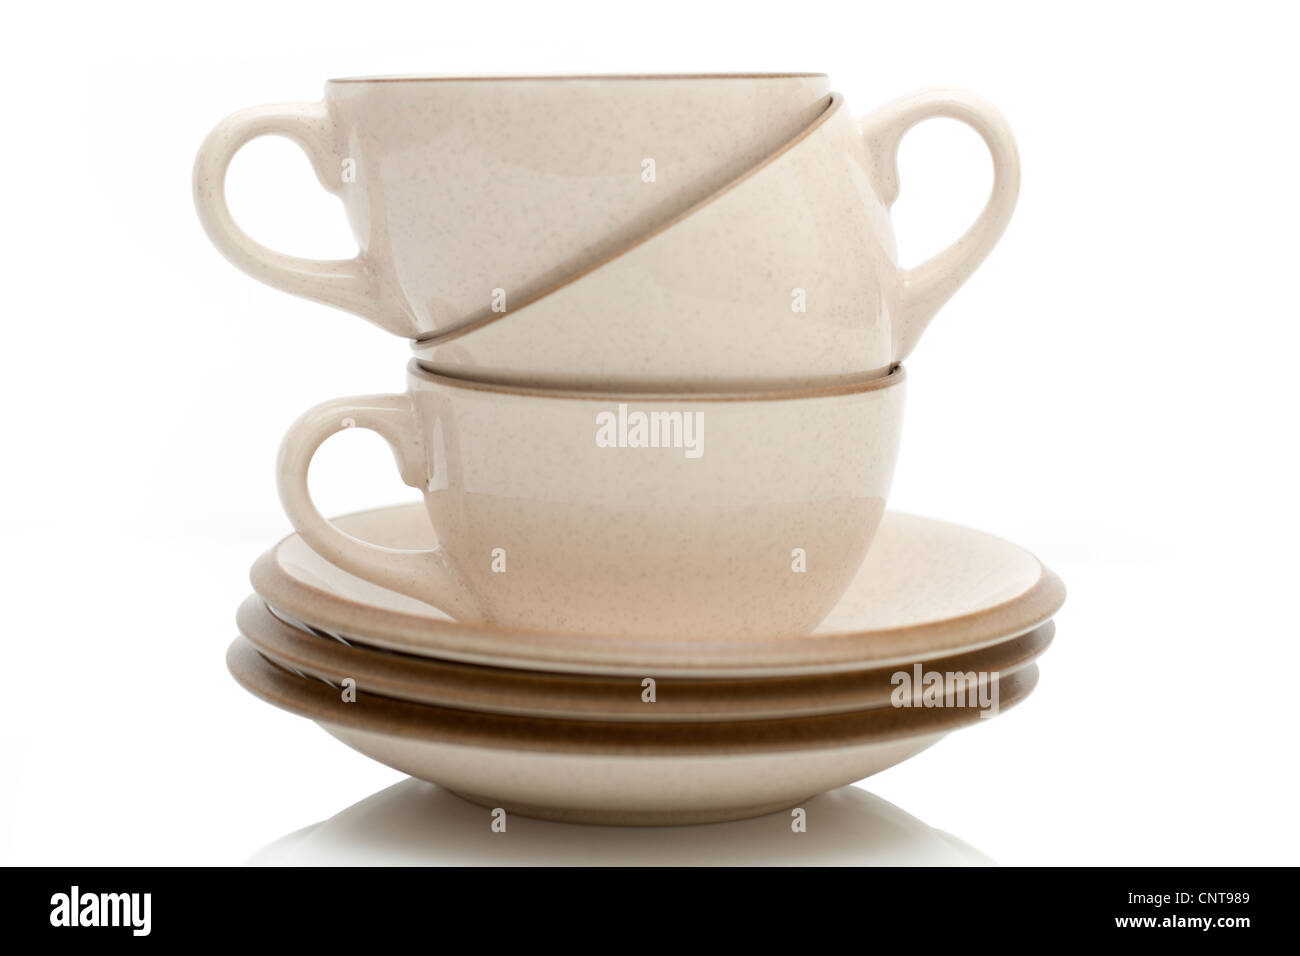 Three stacked beige coffee cups and saucers - Stock Image